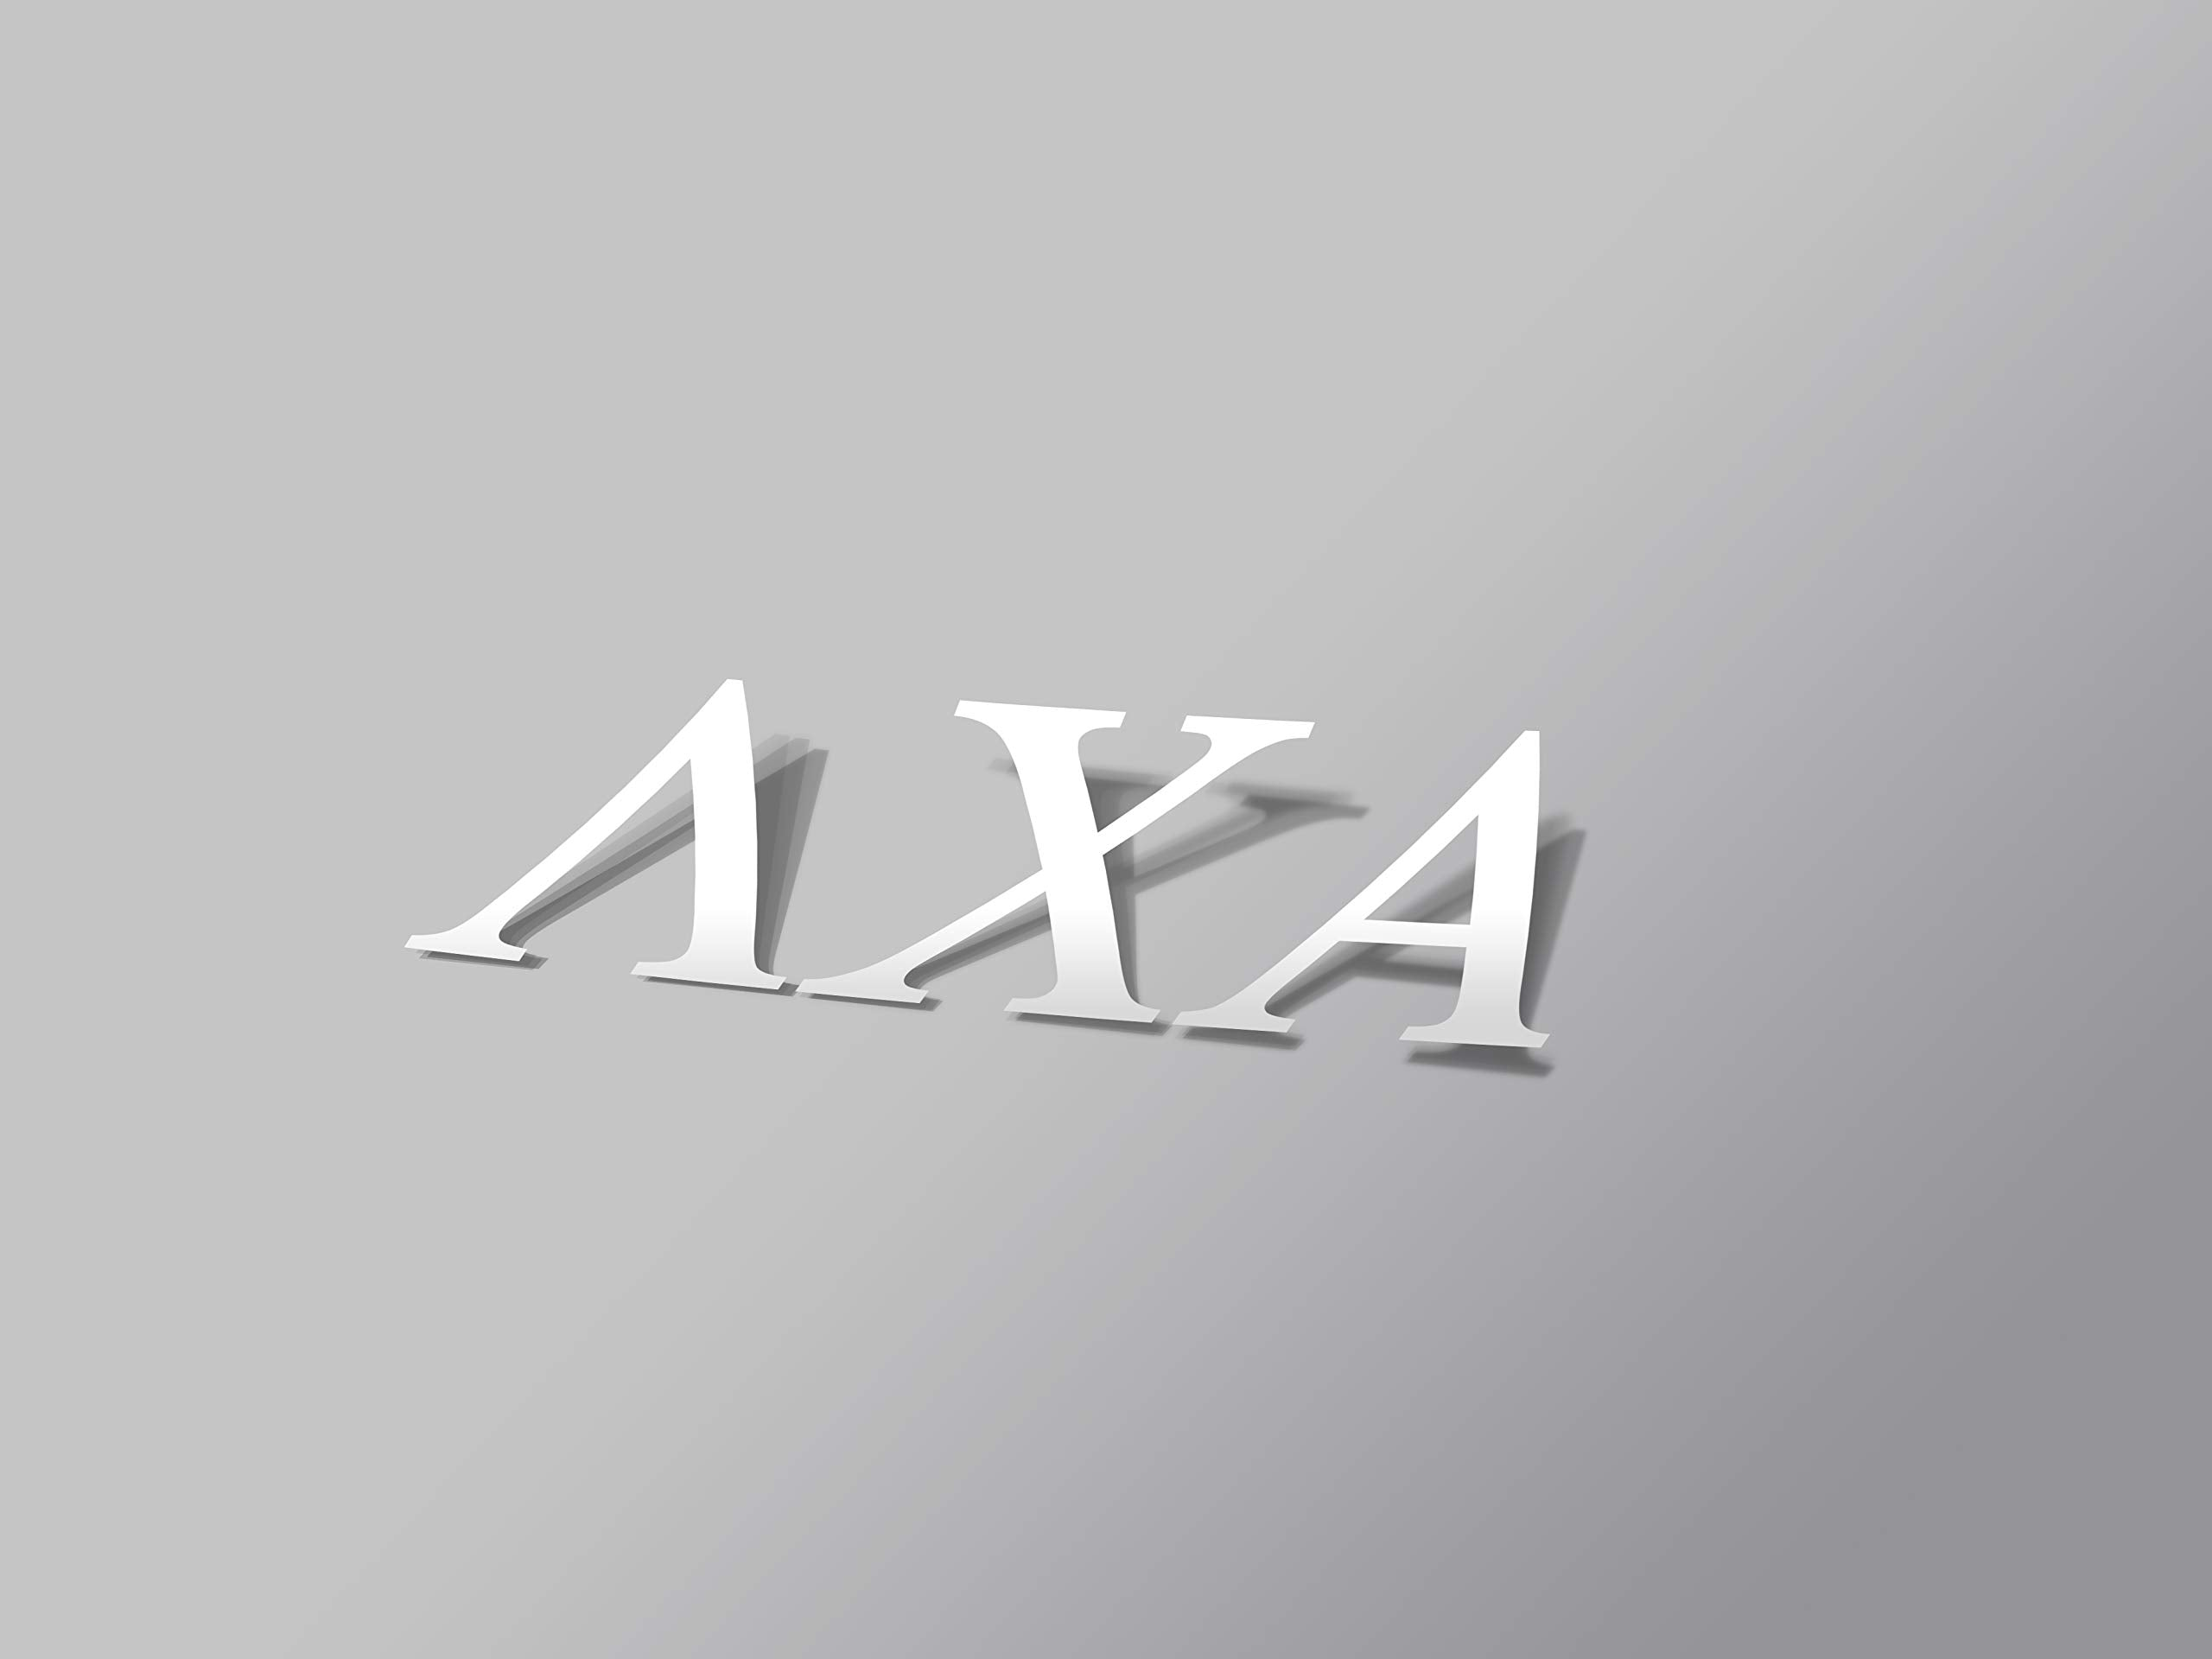 "Lambda Chi Alpha Sticker Greek Sorority Decal for Car, Laptop, Windows, Officially Licensed Product, Monogram Design 2.5"" Tall - White"